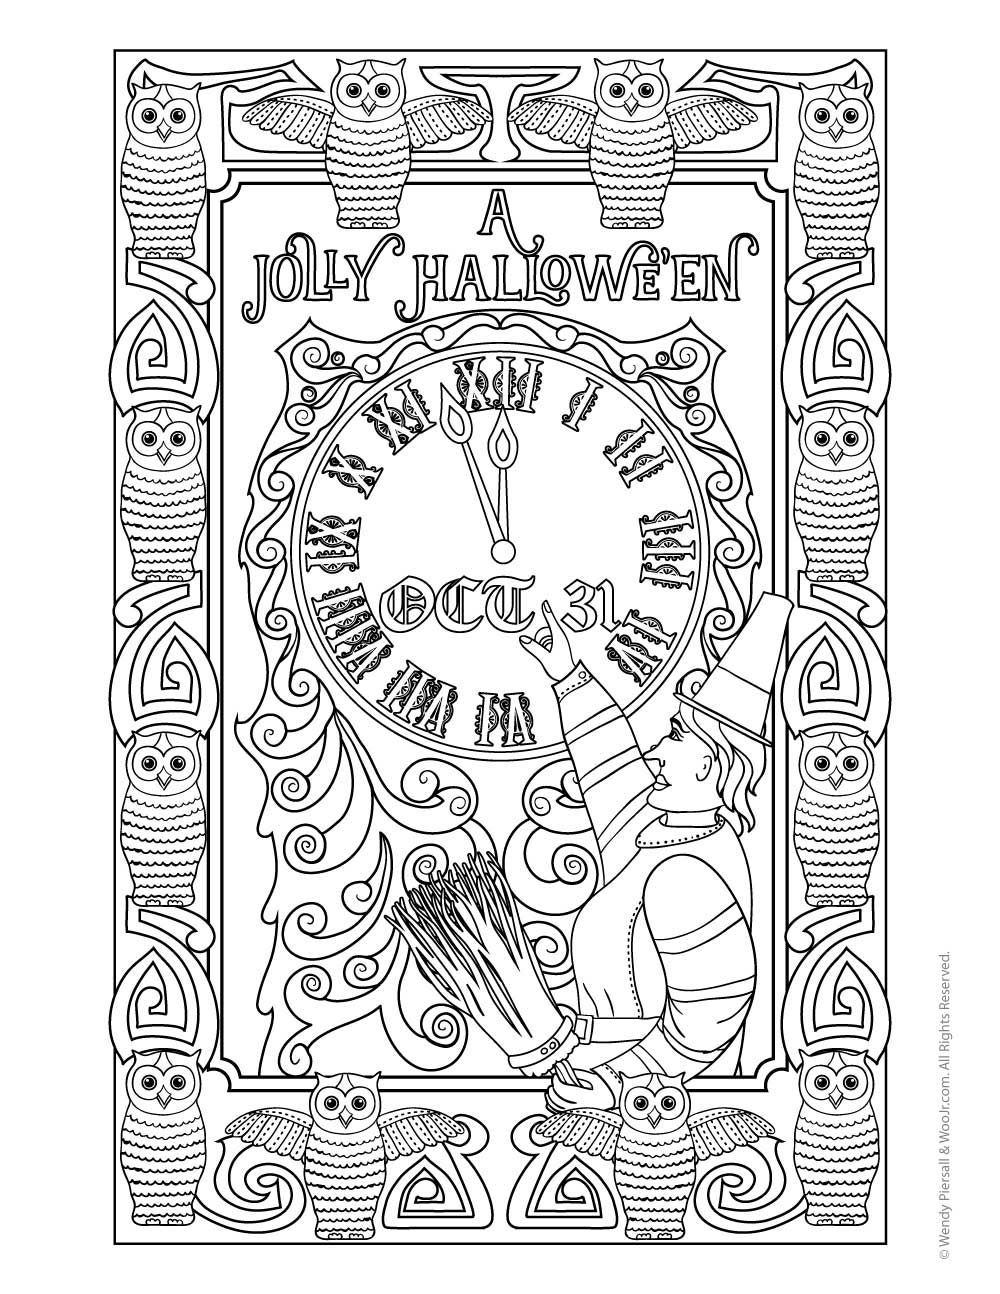 postcards coloring pages